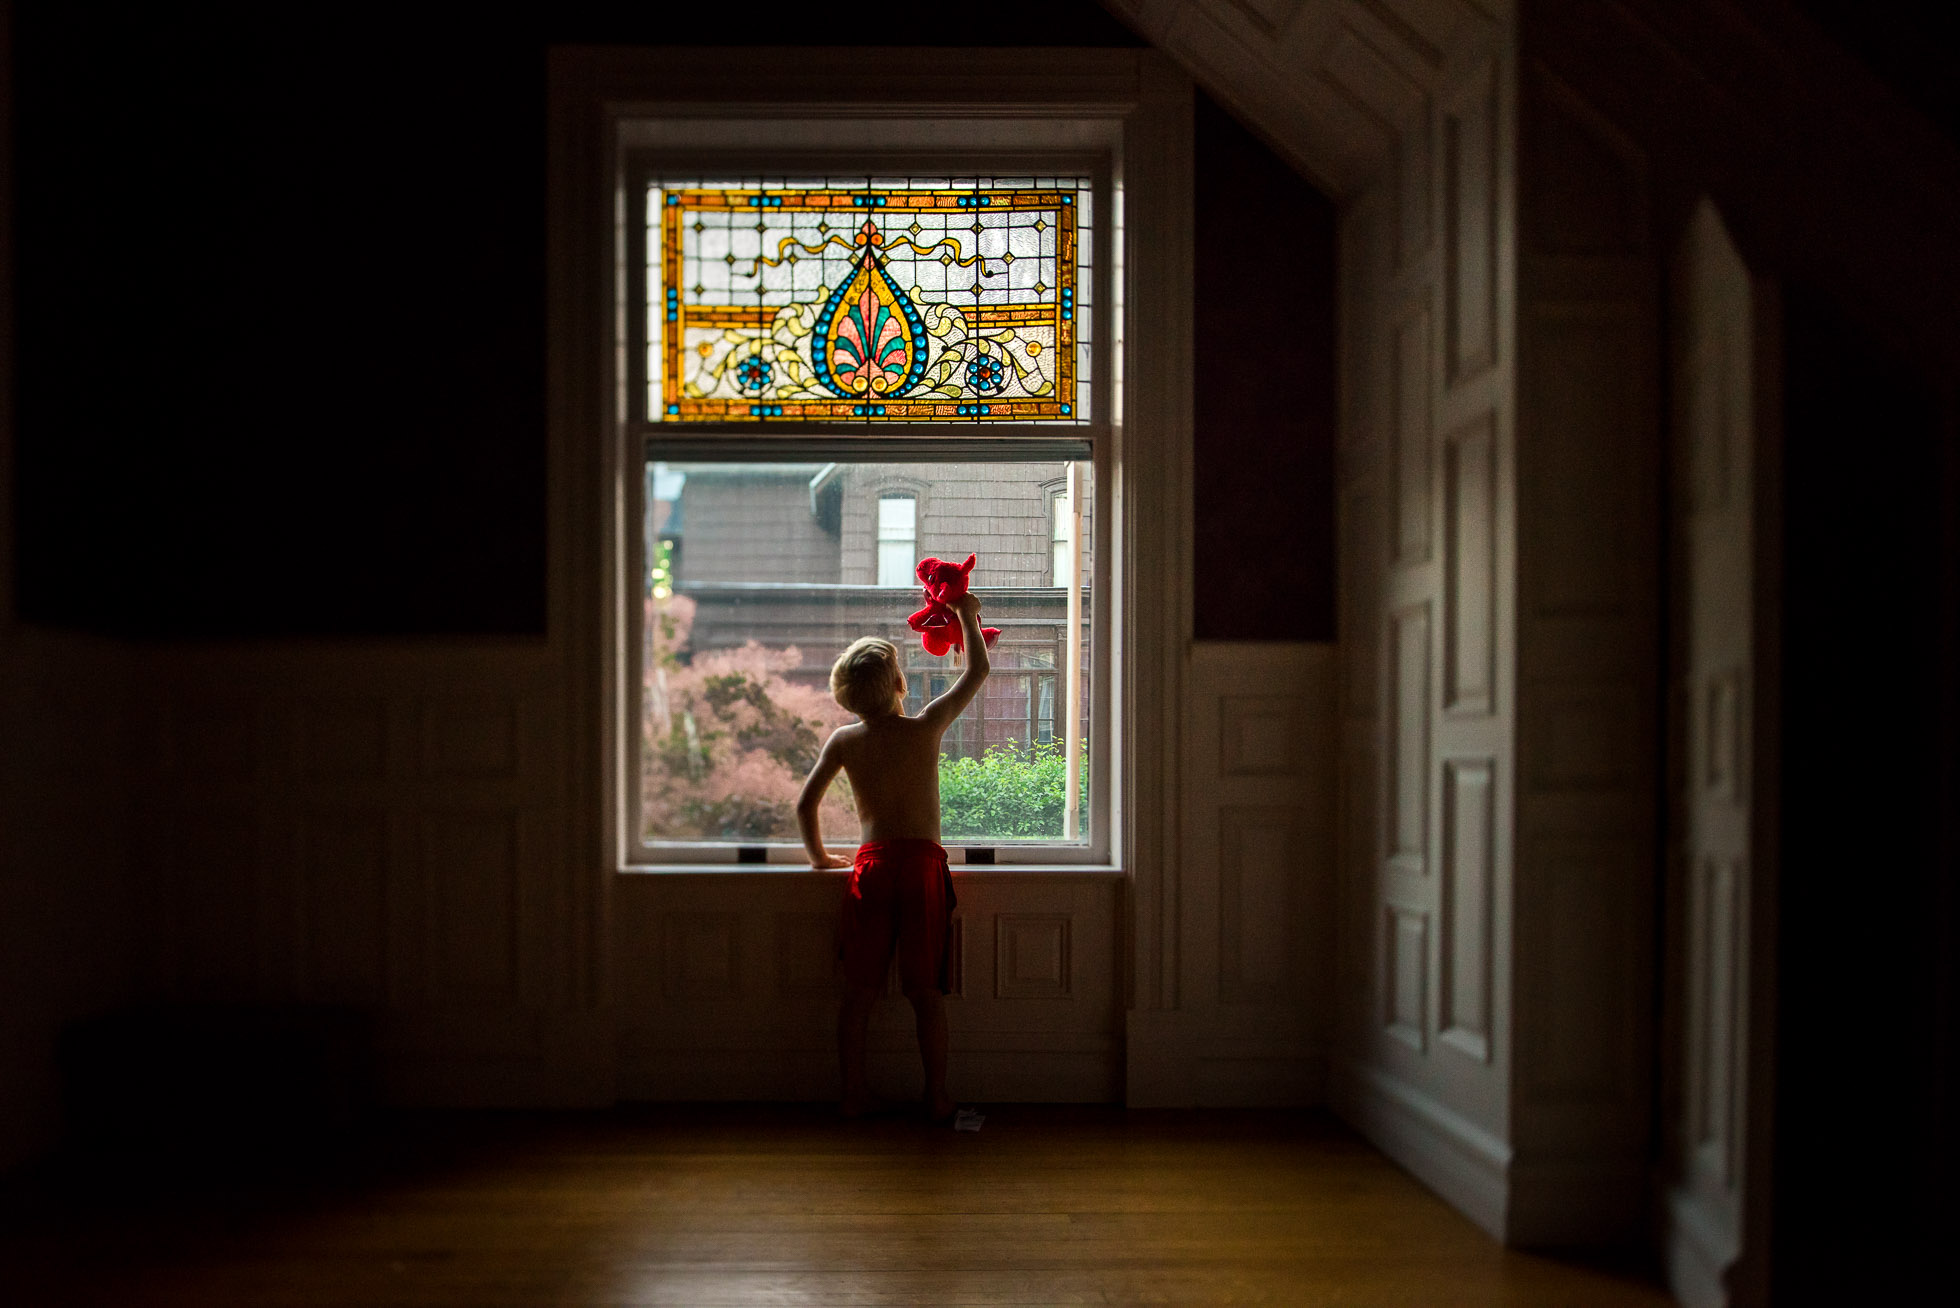 Little-Boy-Playing-with-Red-Dragon-Toy-in-Front-of-Beautiful-Stained-Glass-Window-in-Low-Light-by-Sarah-Wilkerson-8115